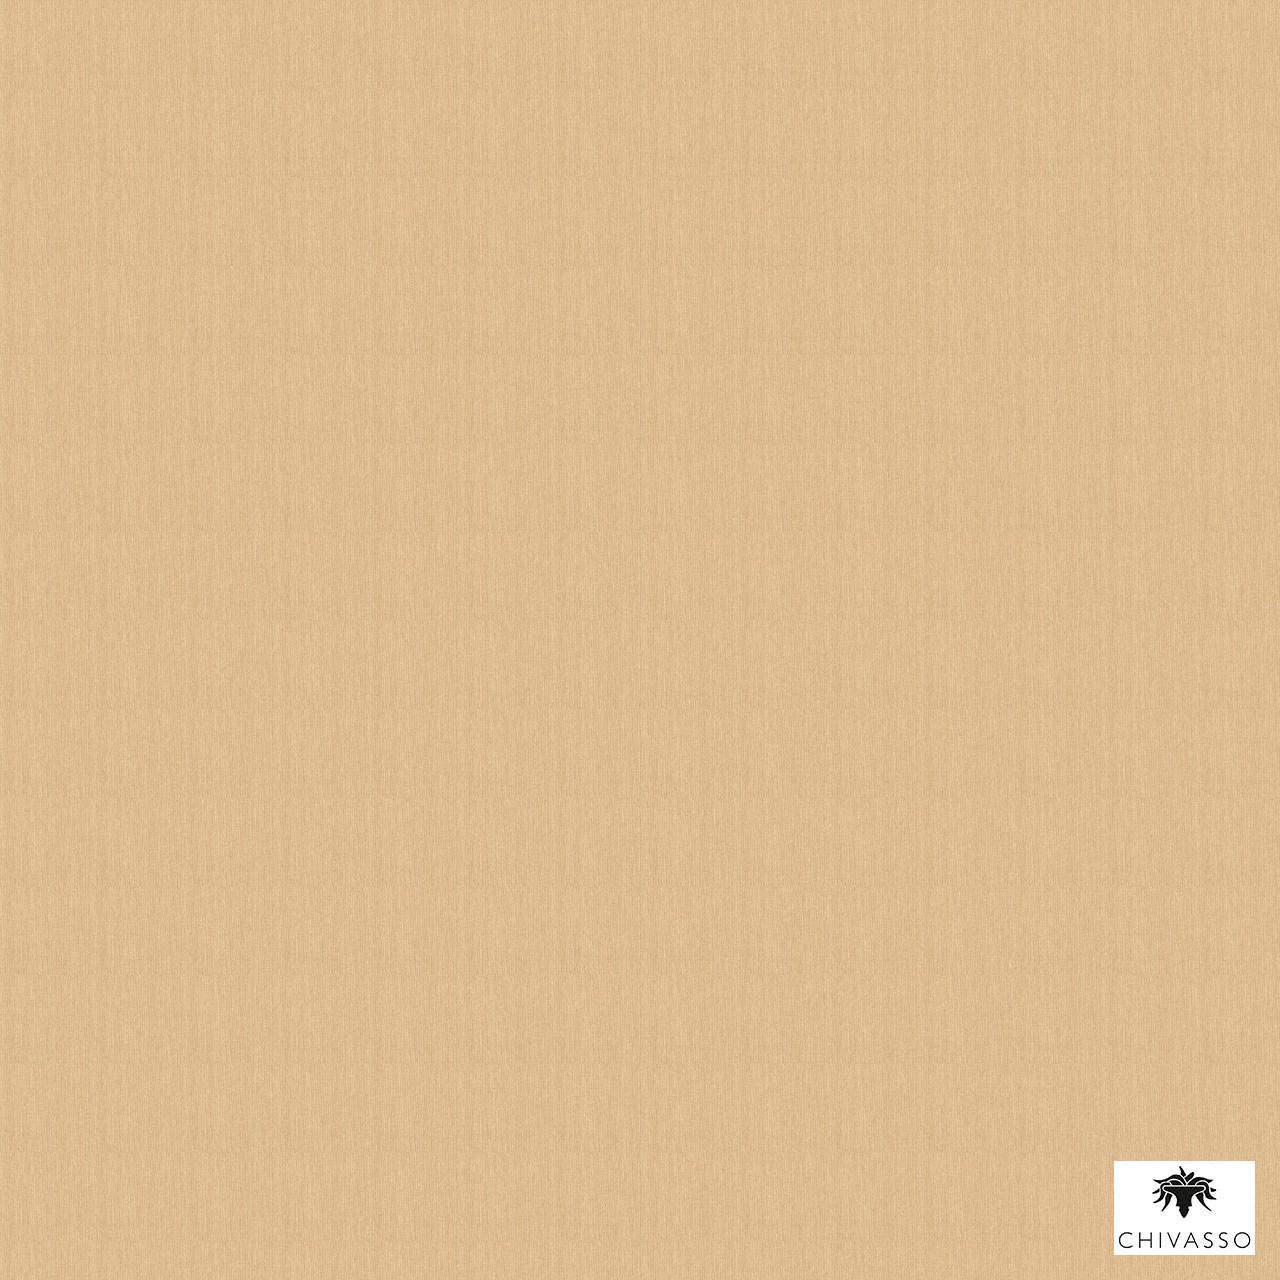 Chivasso - Colour Block - Ch9112-078  | Wallpaper, Wallcovering - Gold,  Yellow, Plain, Domestic Use